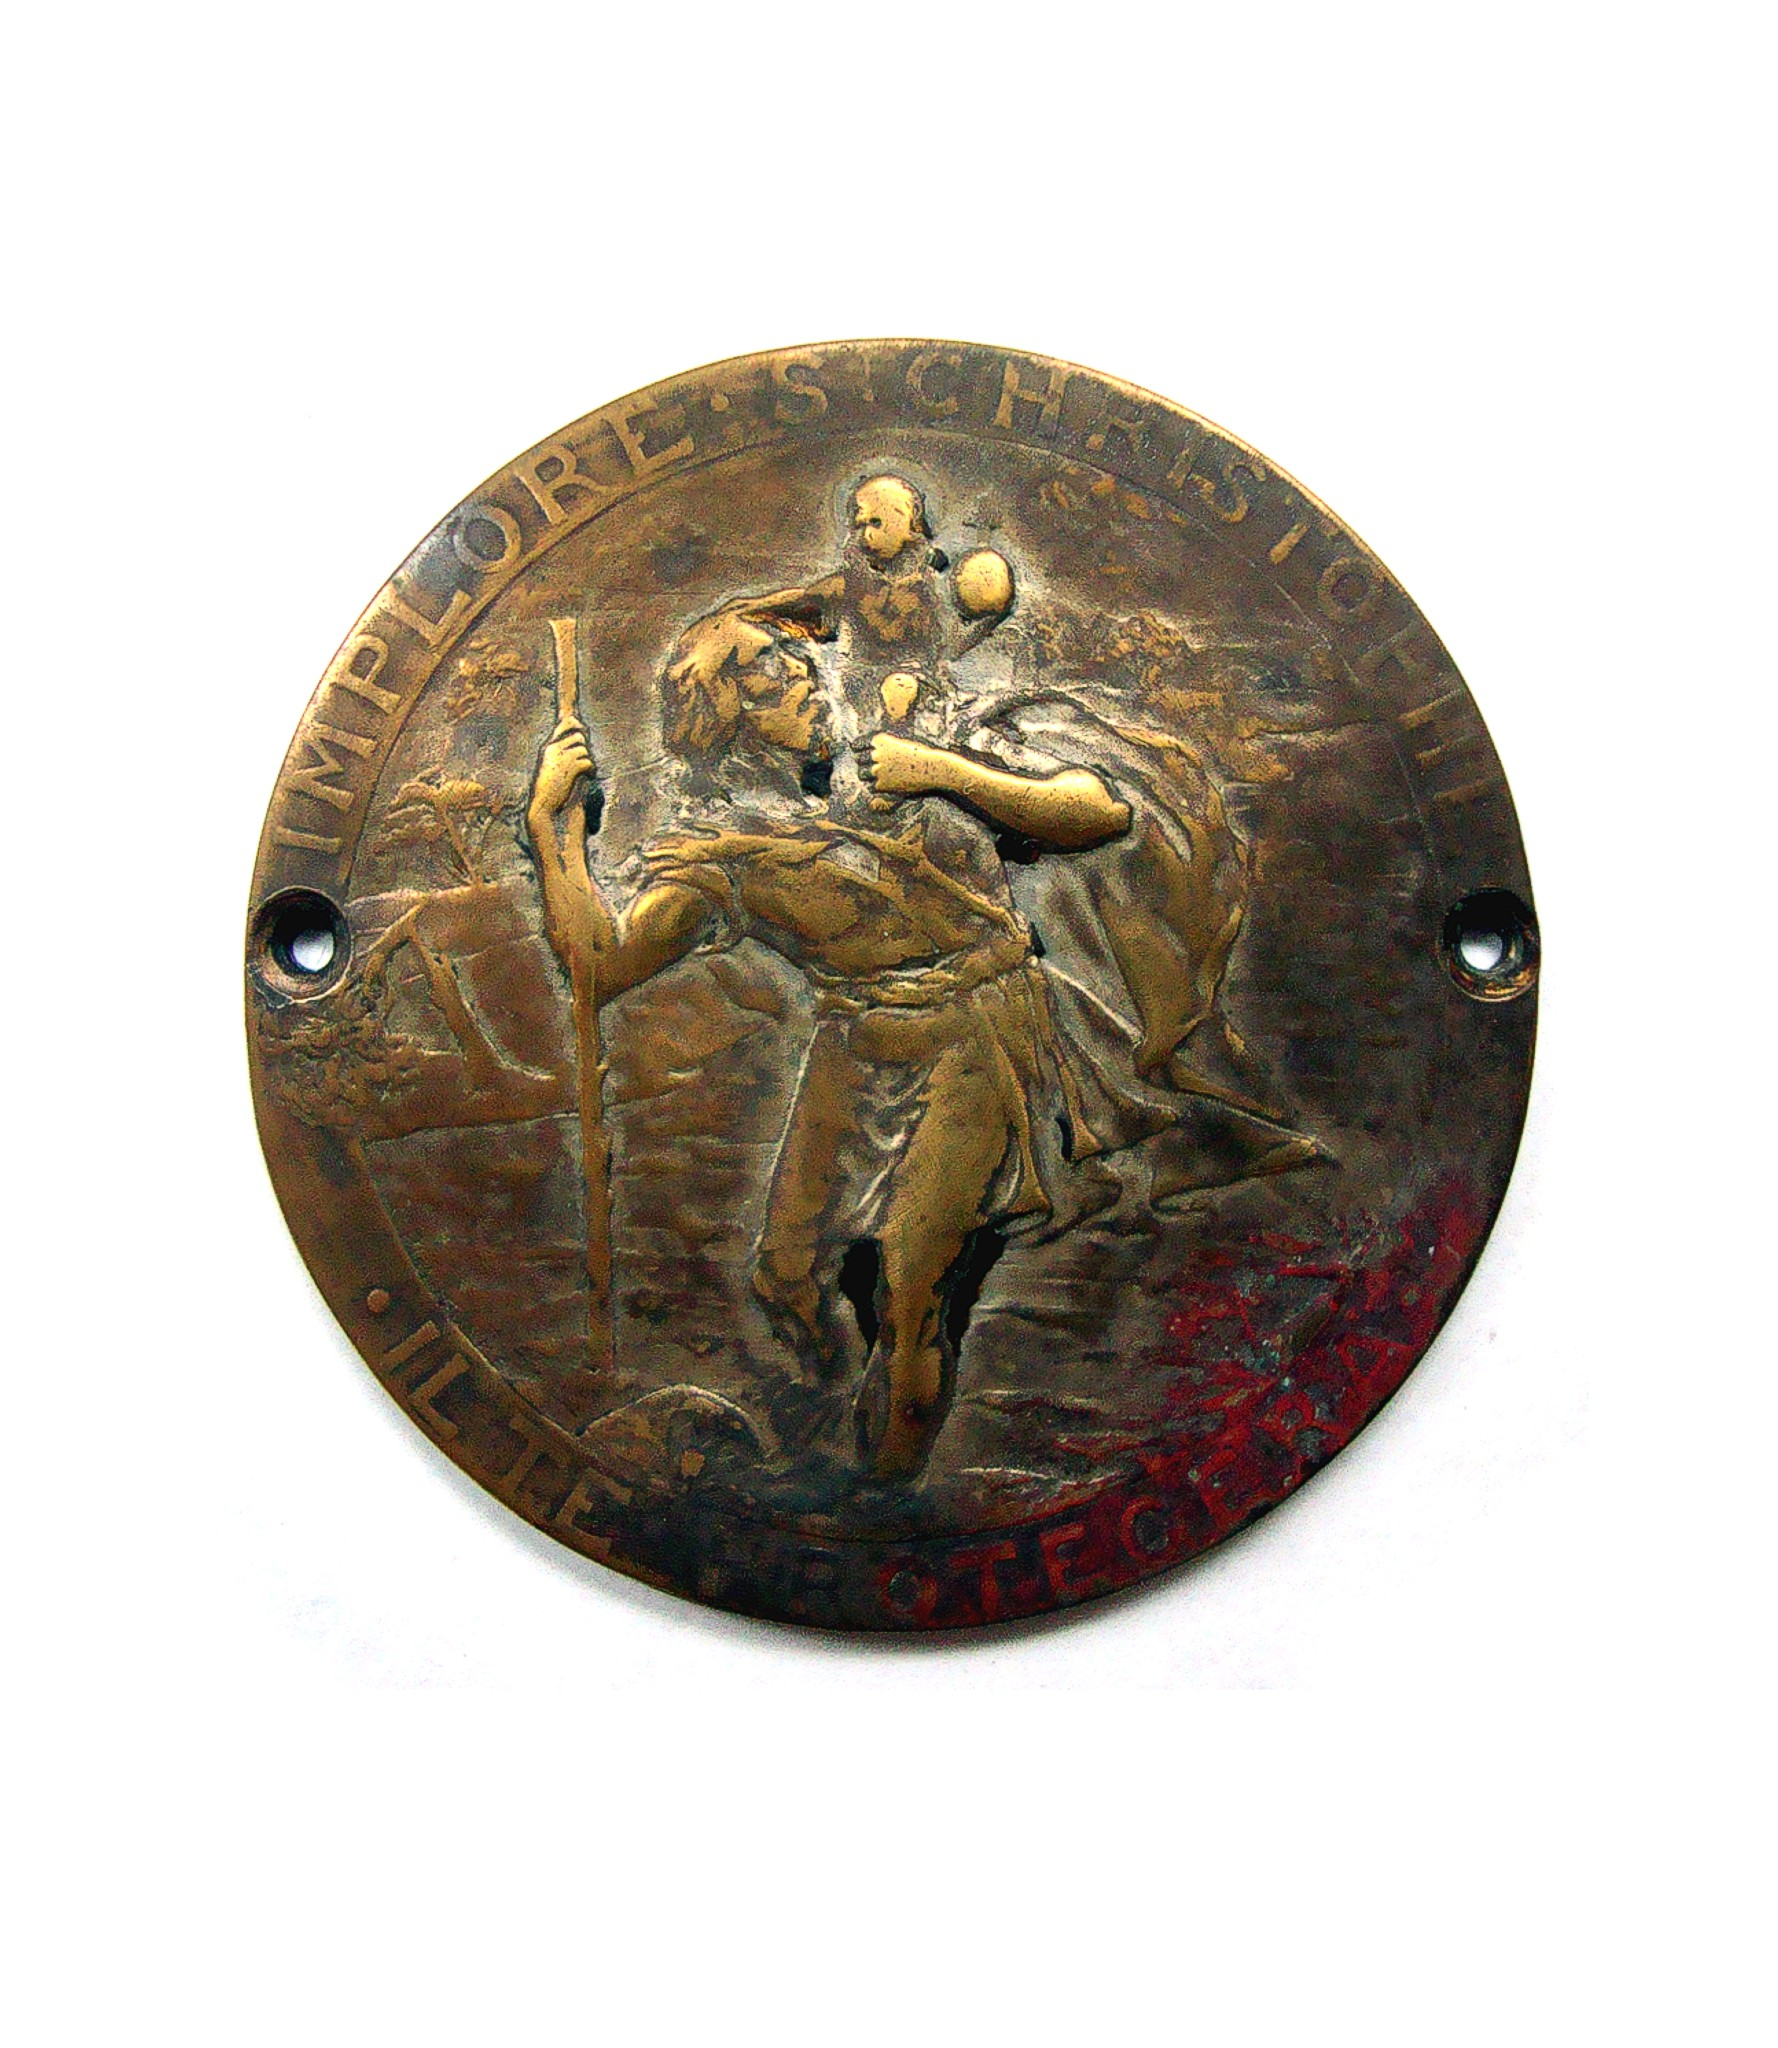 Rare Saint Christophe dashbaord badge by Prud´Homme for sale